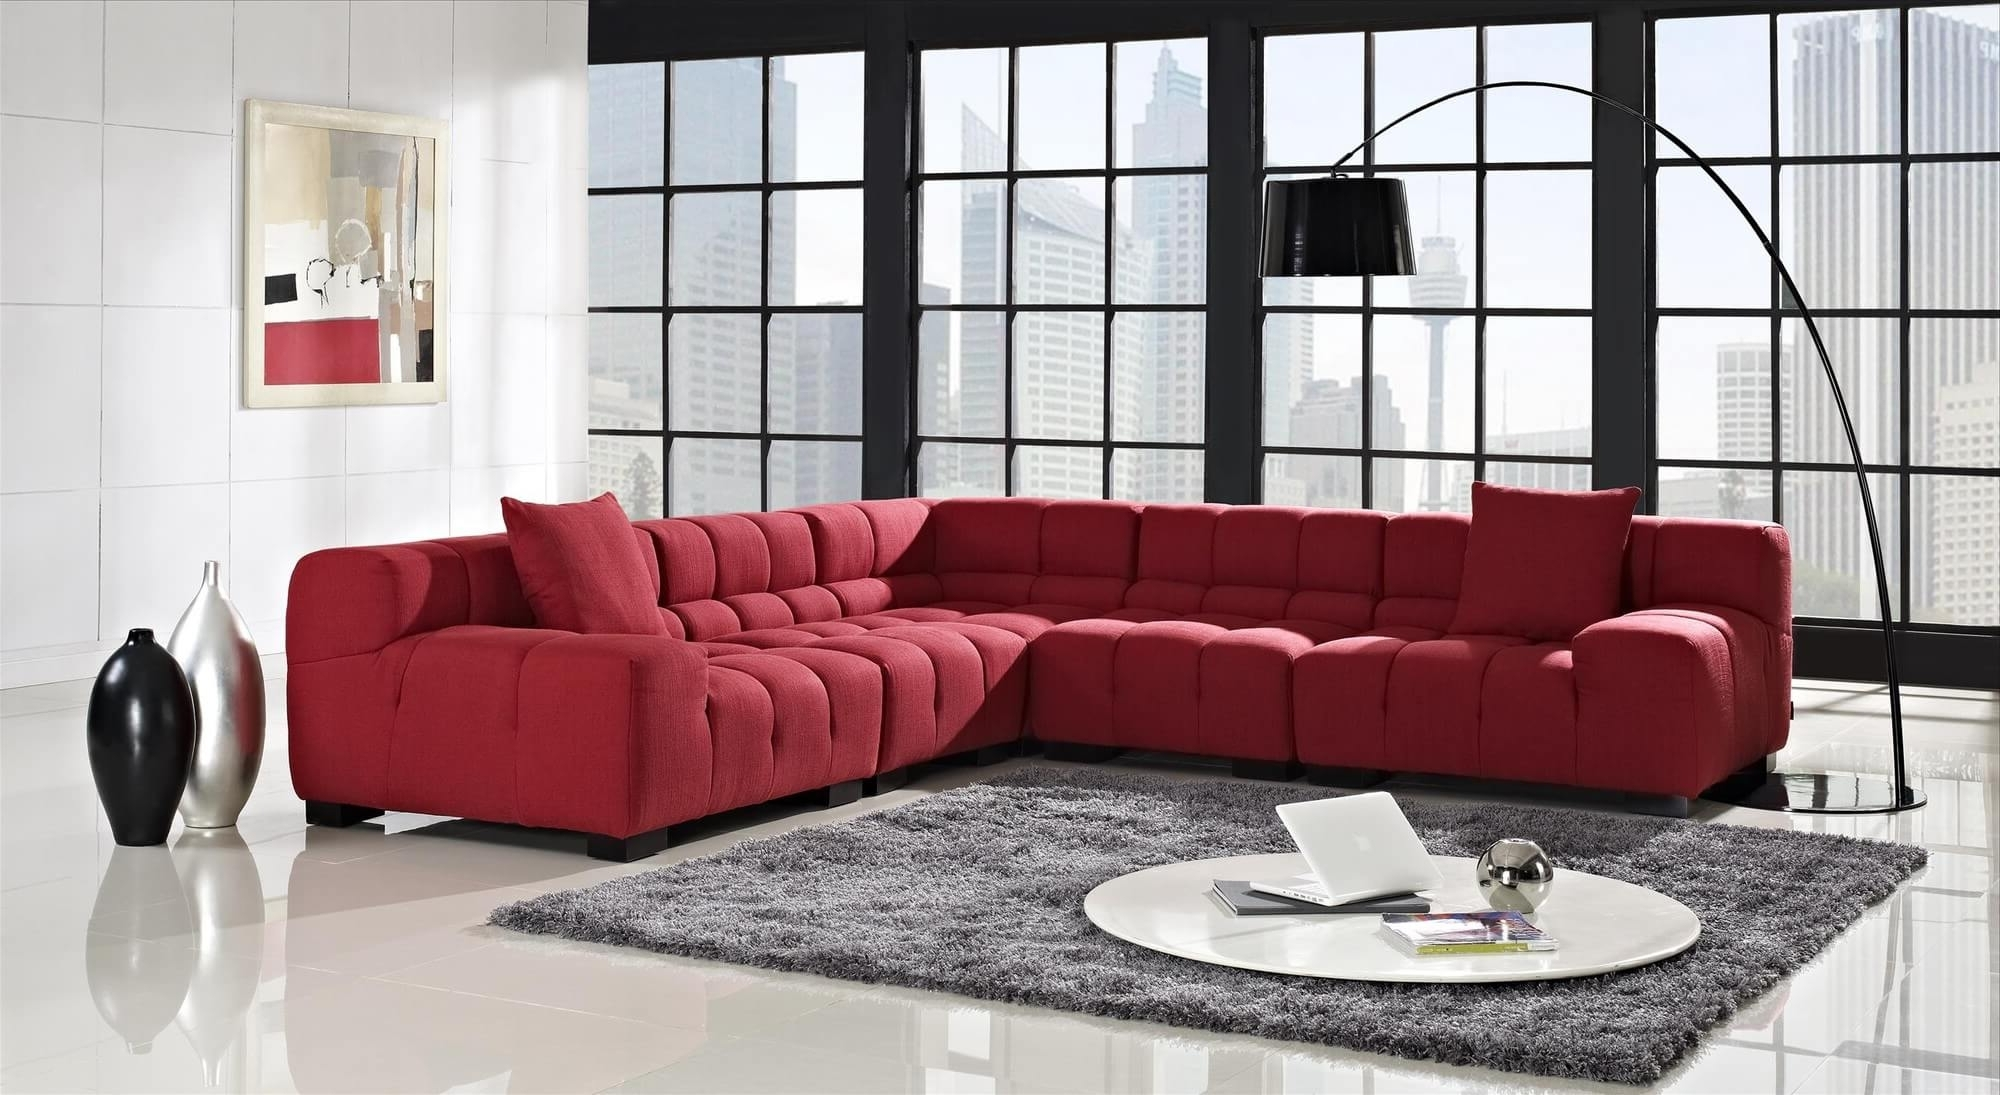 Ethan Allen Charlotte Nc Modern Italian Leather Sofa Ethan Allen Inside Widely Used Sectional Sofas At Charlotte Nc (View 5 of 15)